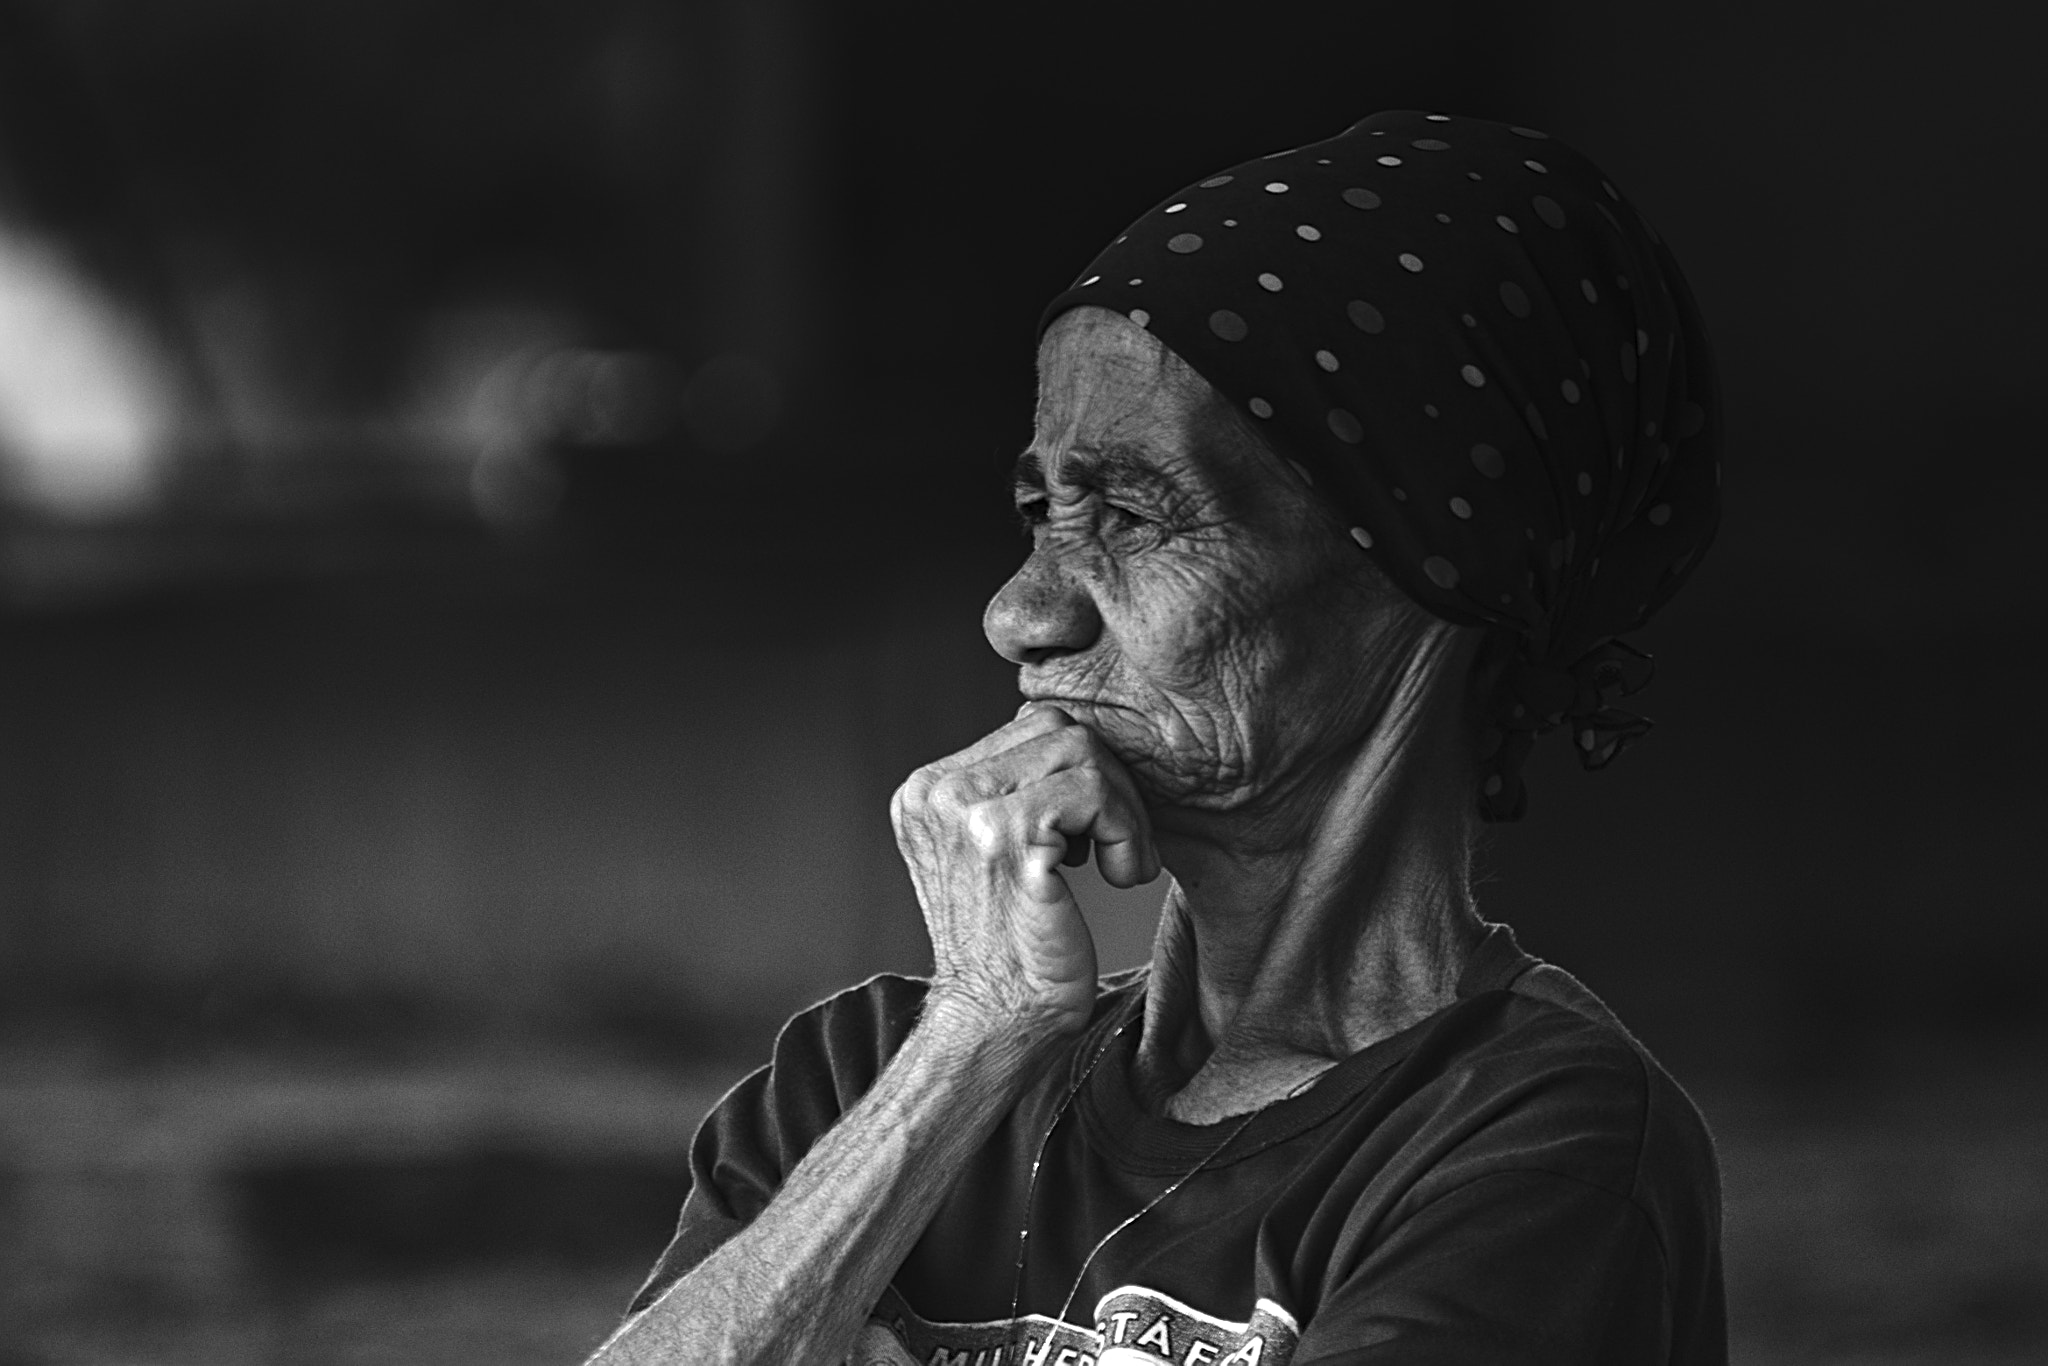 Photograph Life is full of pain by Francisco Cribari on 500px